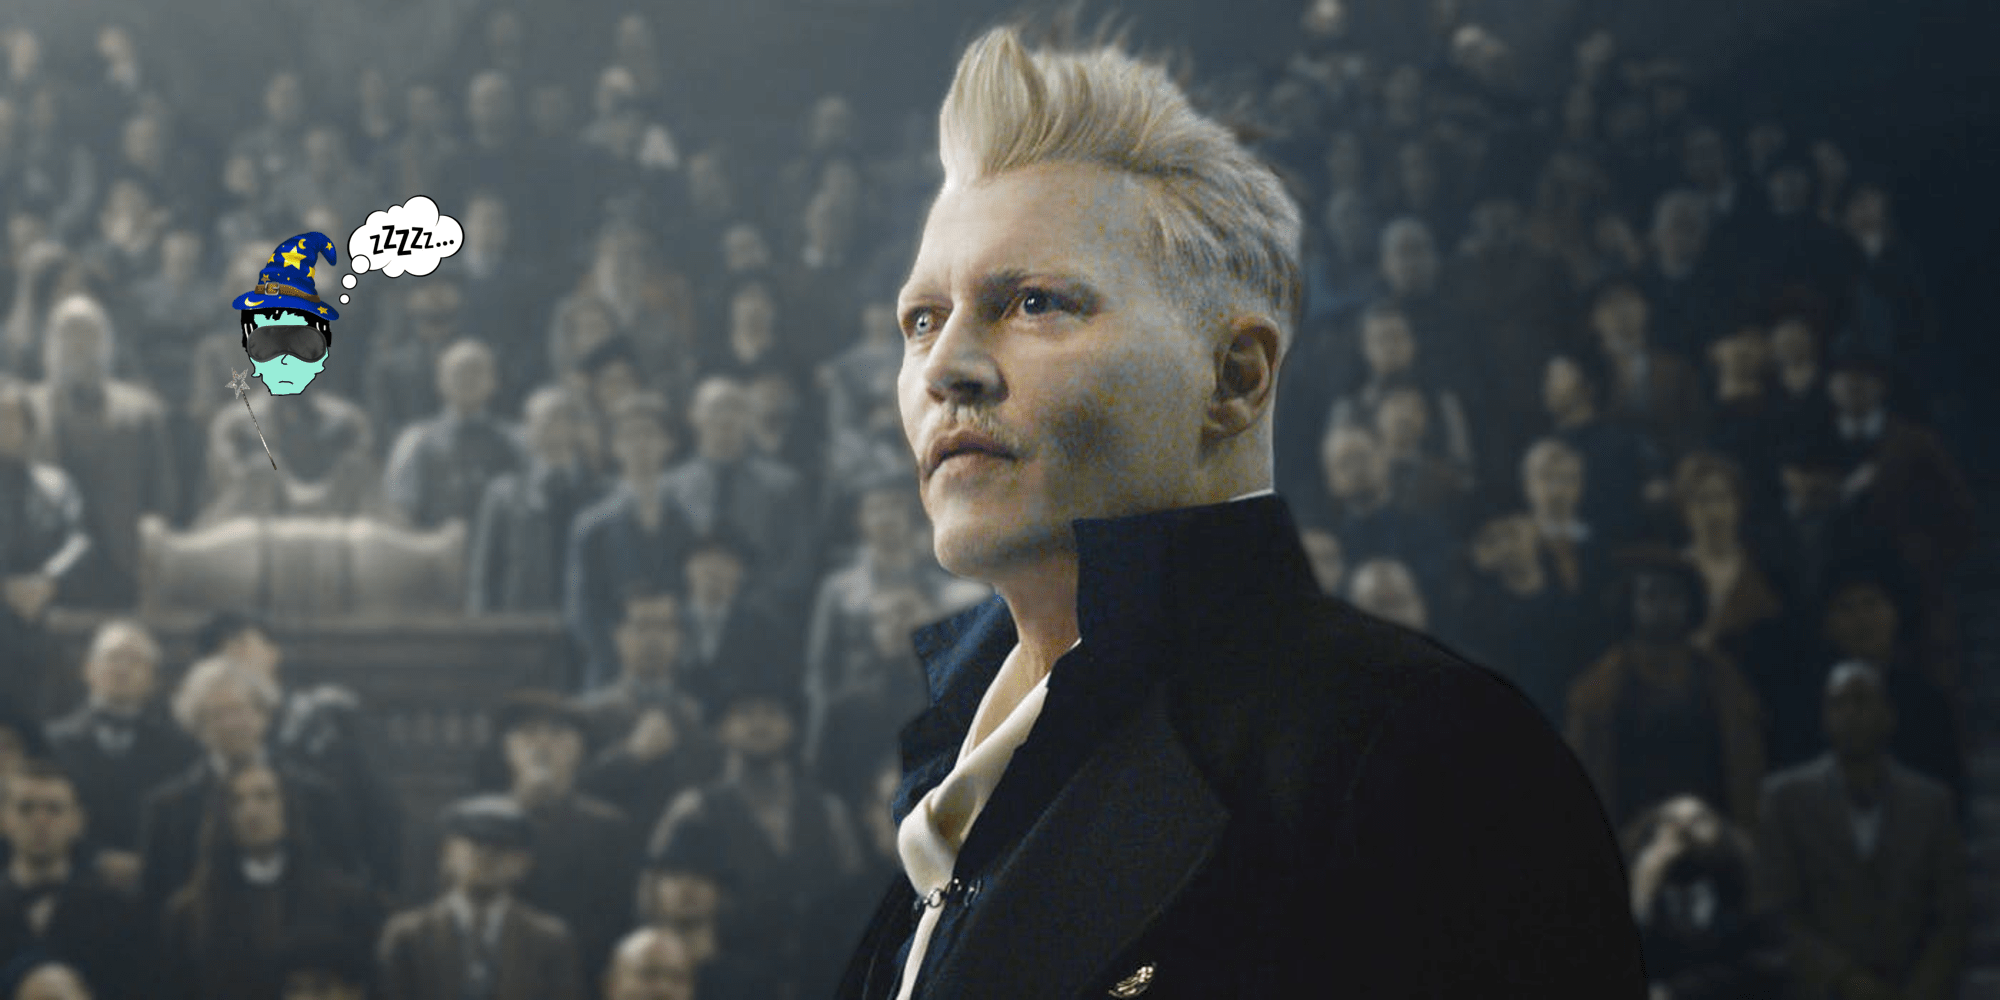 Fantastic Beasts: The Crimes of Boredom